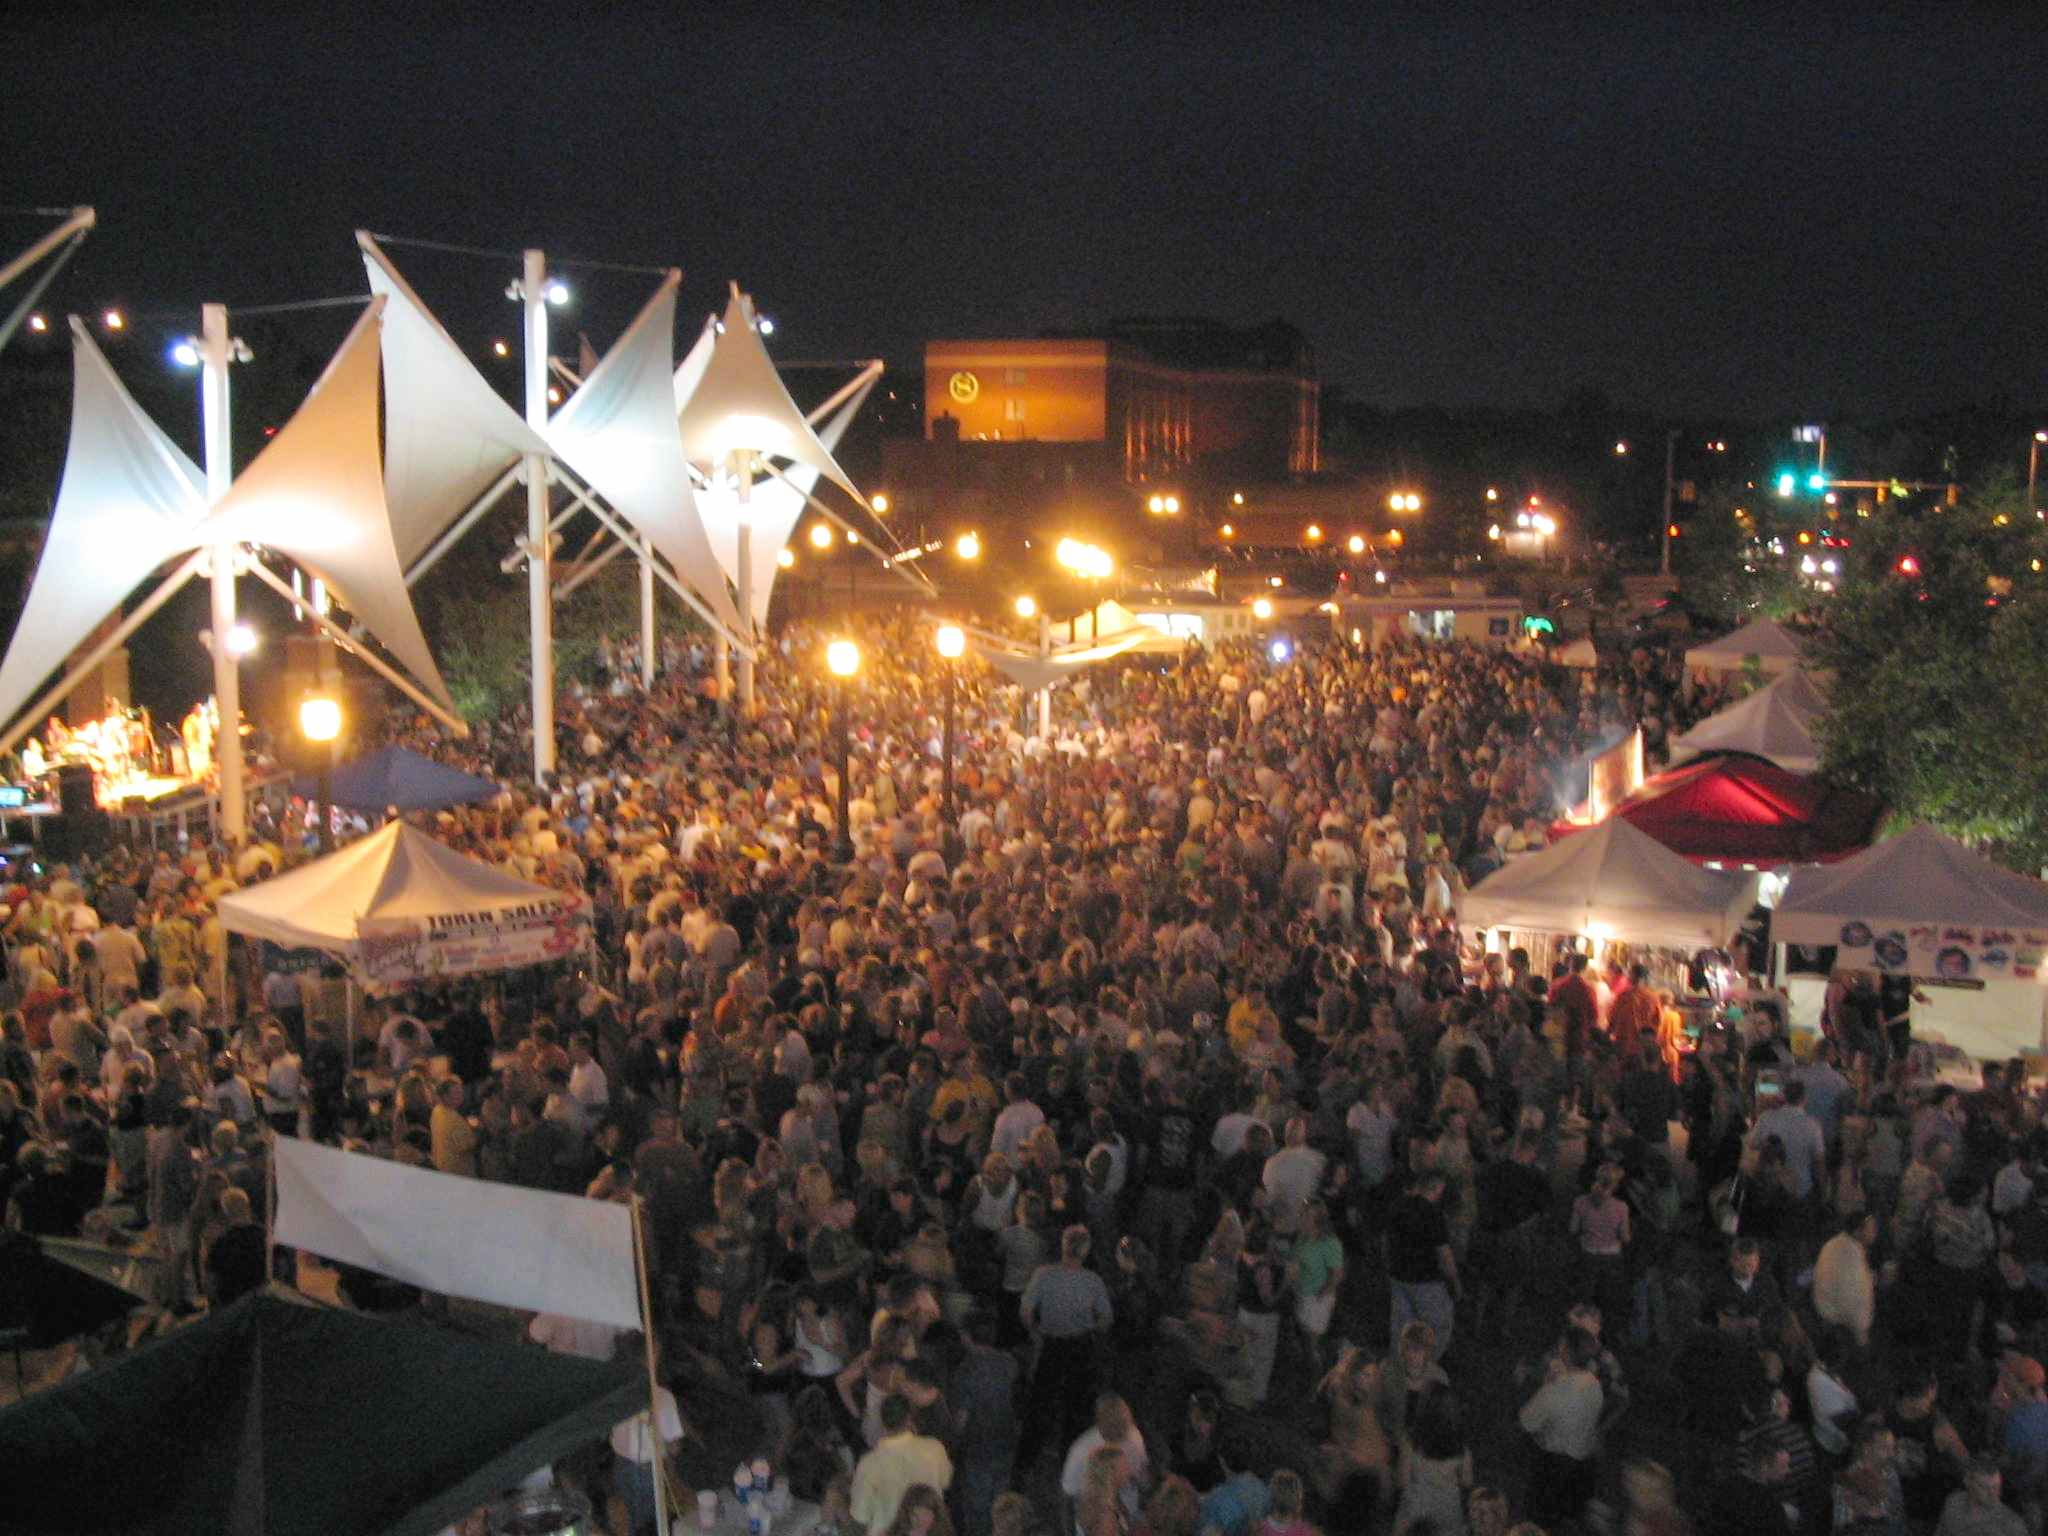 Falls River Square - Festivals and Events